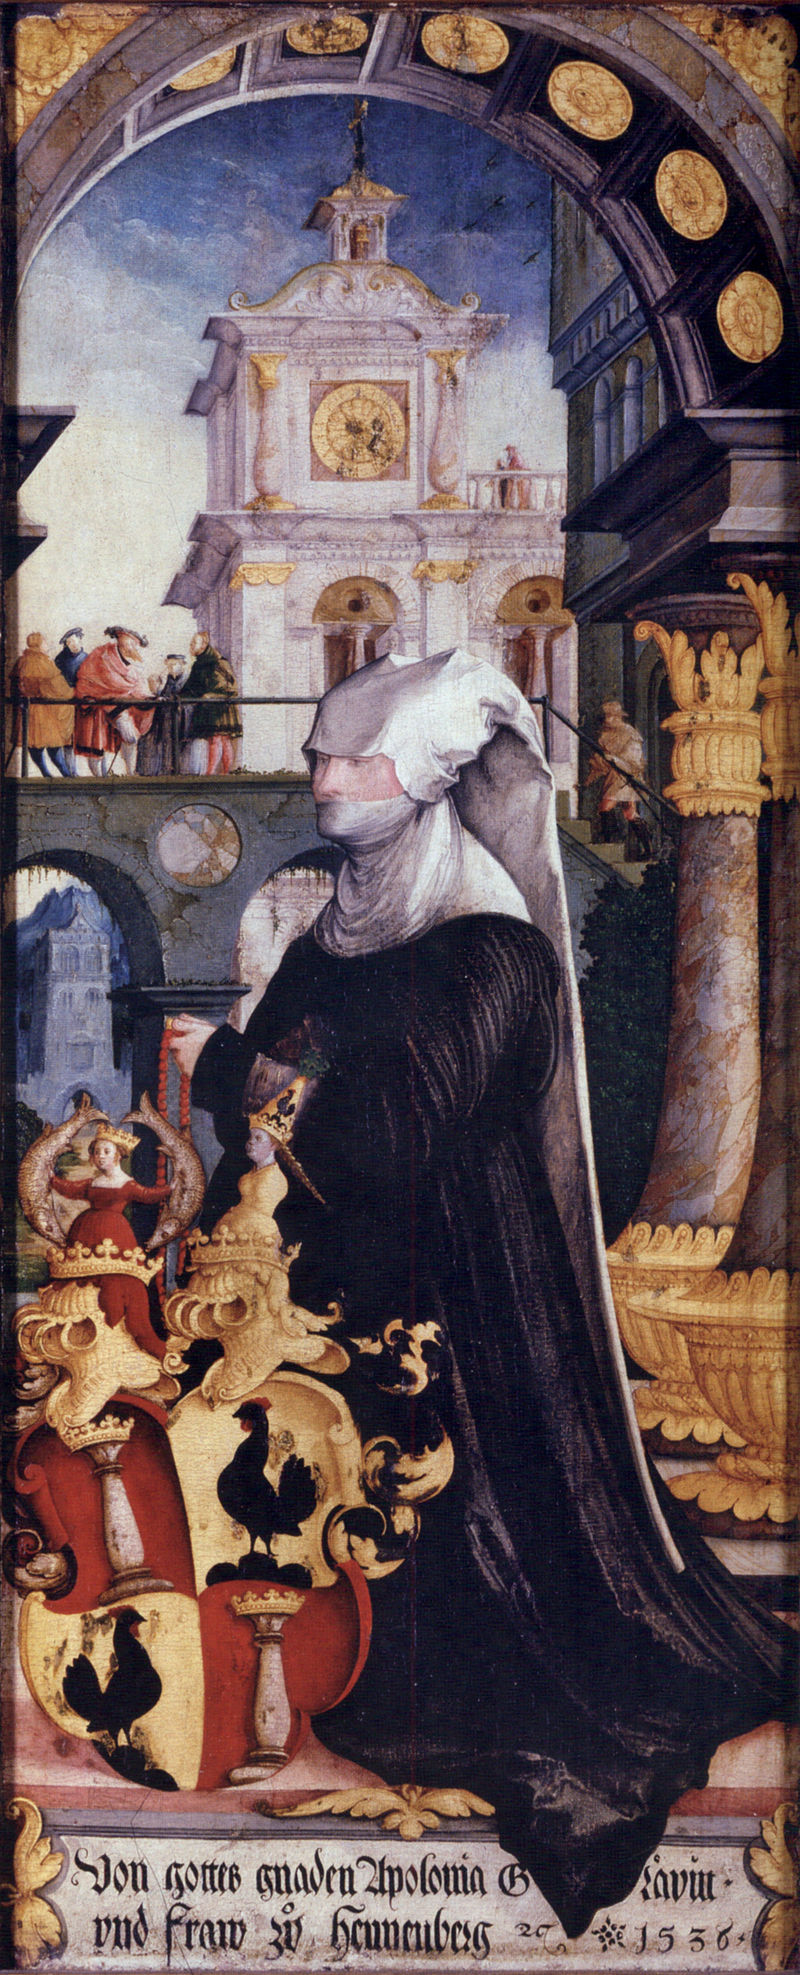 (Donor portrait) Countess Apollonia von Henneberg with coat of arms